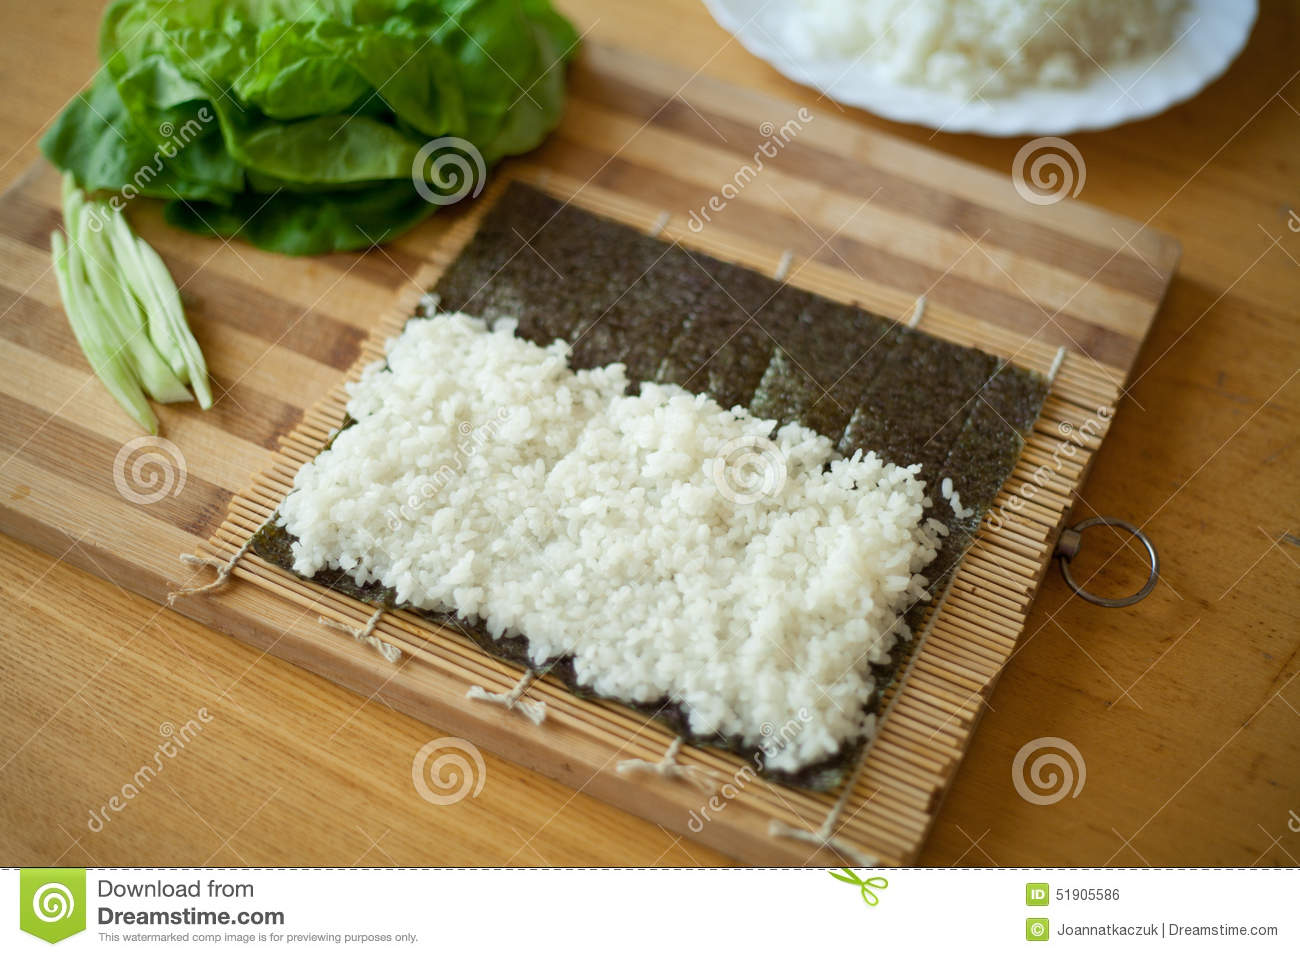 2060f1fe5f1a Sushi preparation rice stock photo. Image of cook